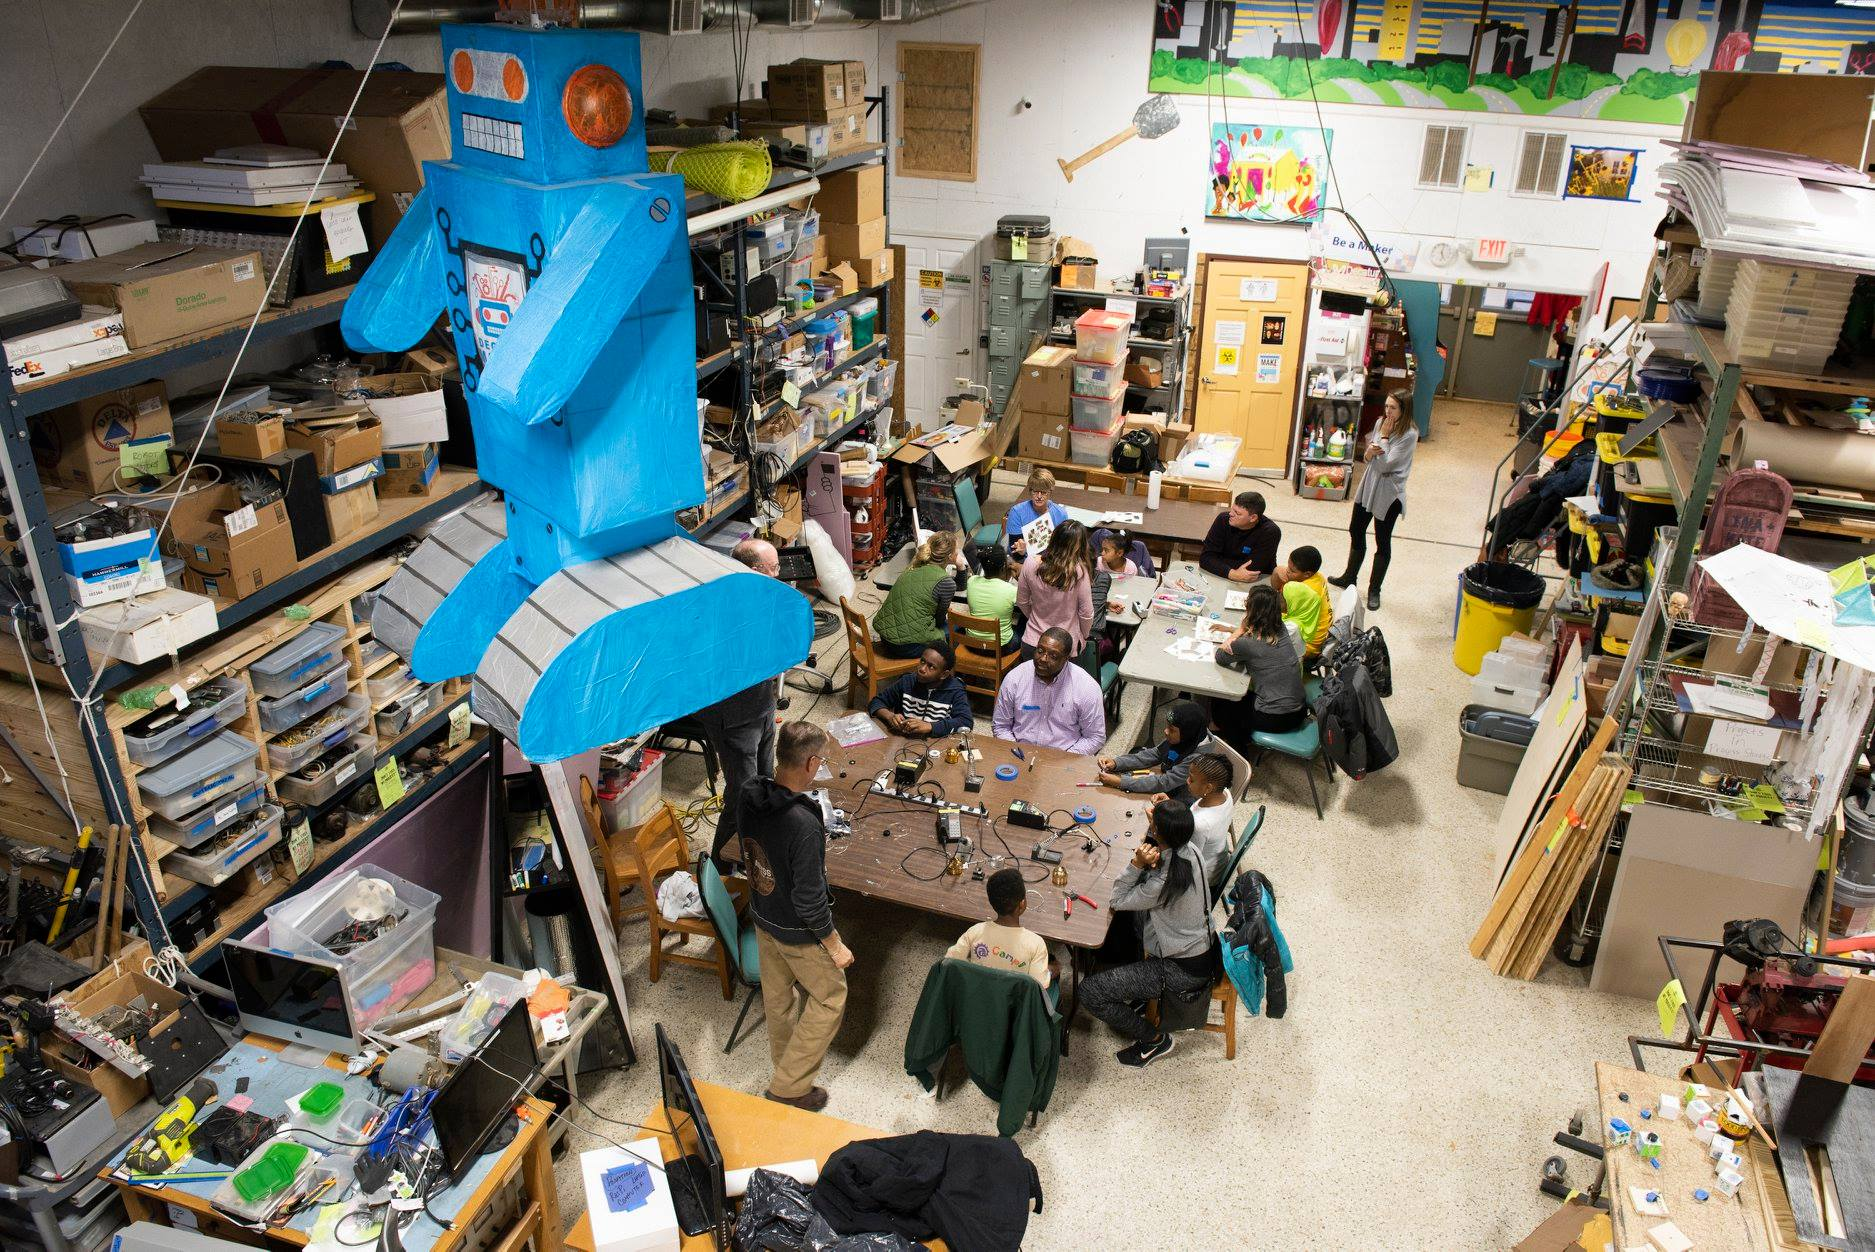 An overhead shot of Decatur Makers' space shows a large blue robot sculpture hanging from the ceiling, and several adults sitting in groups around tables.